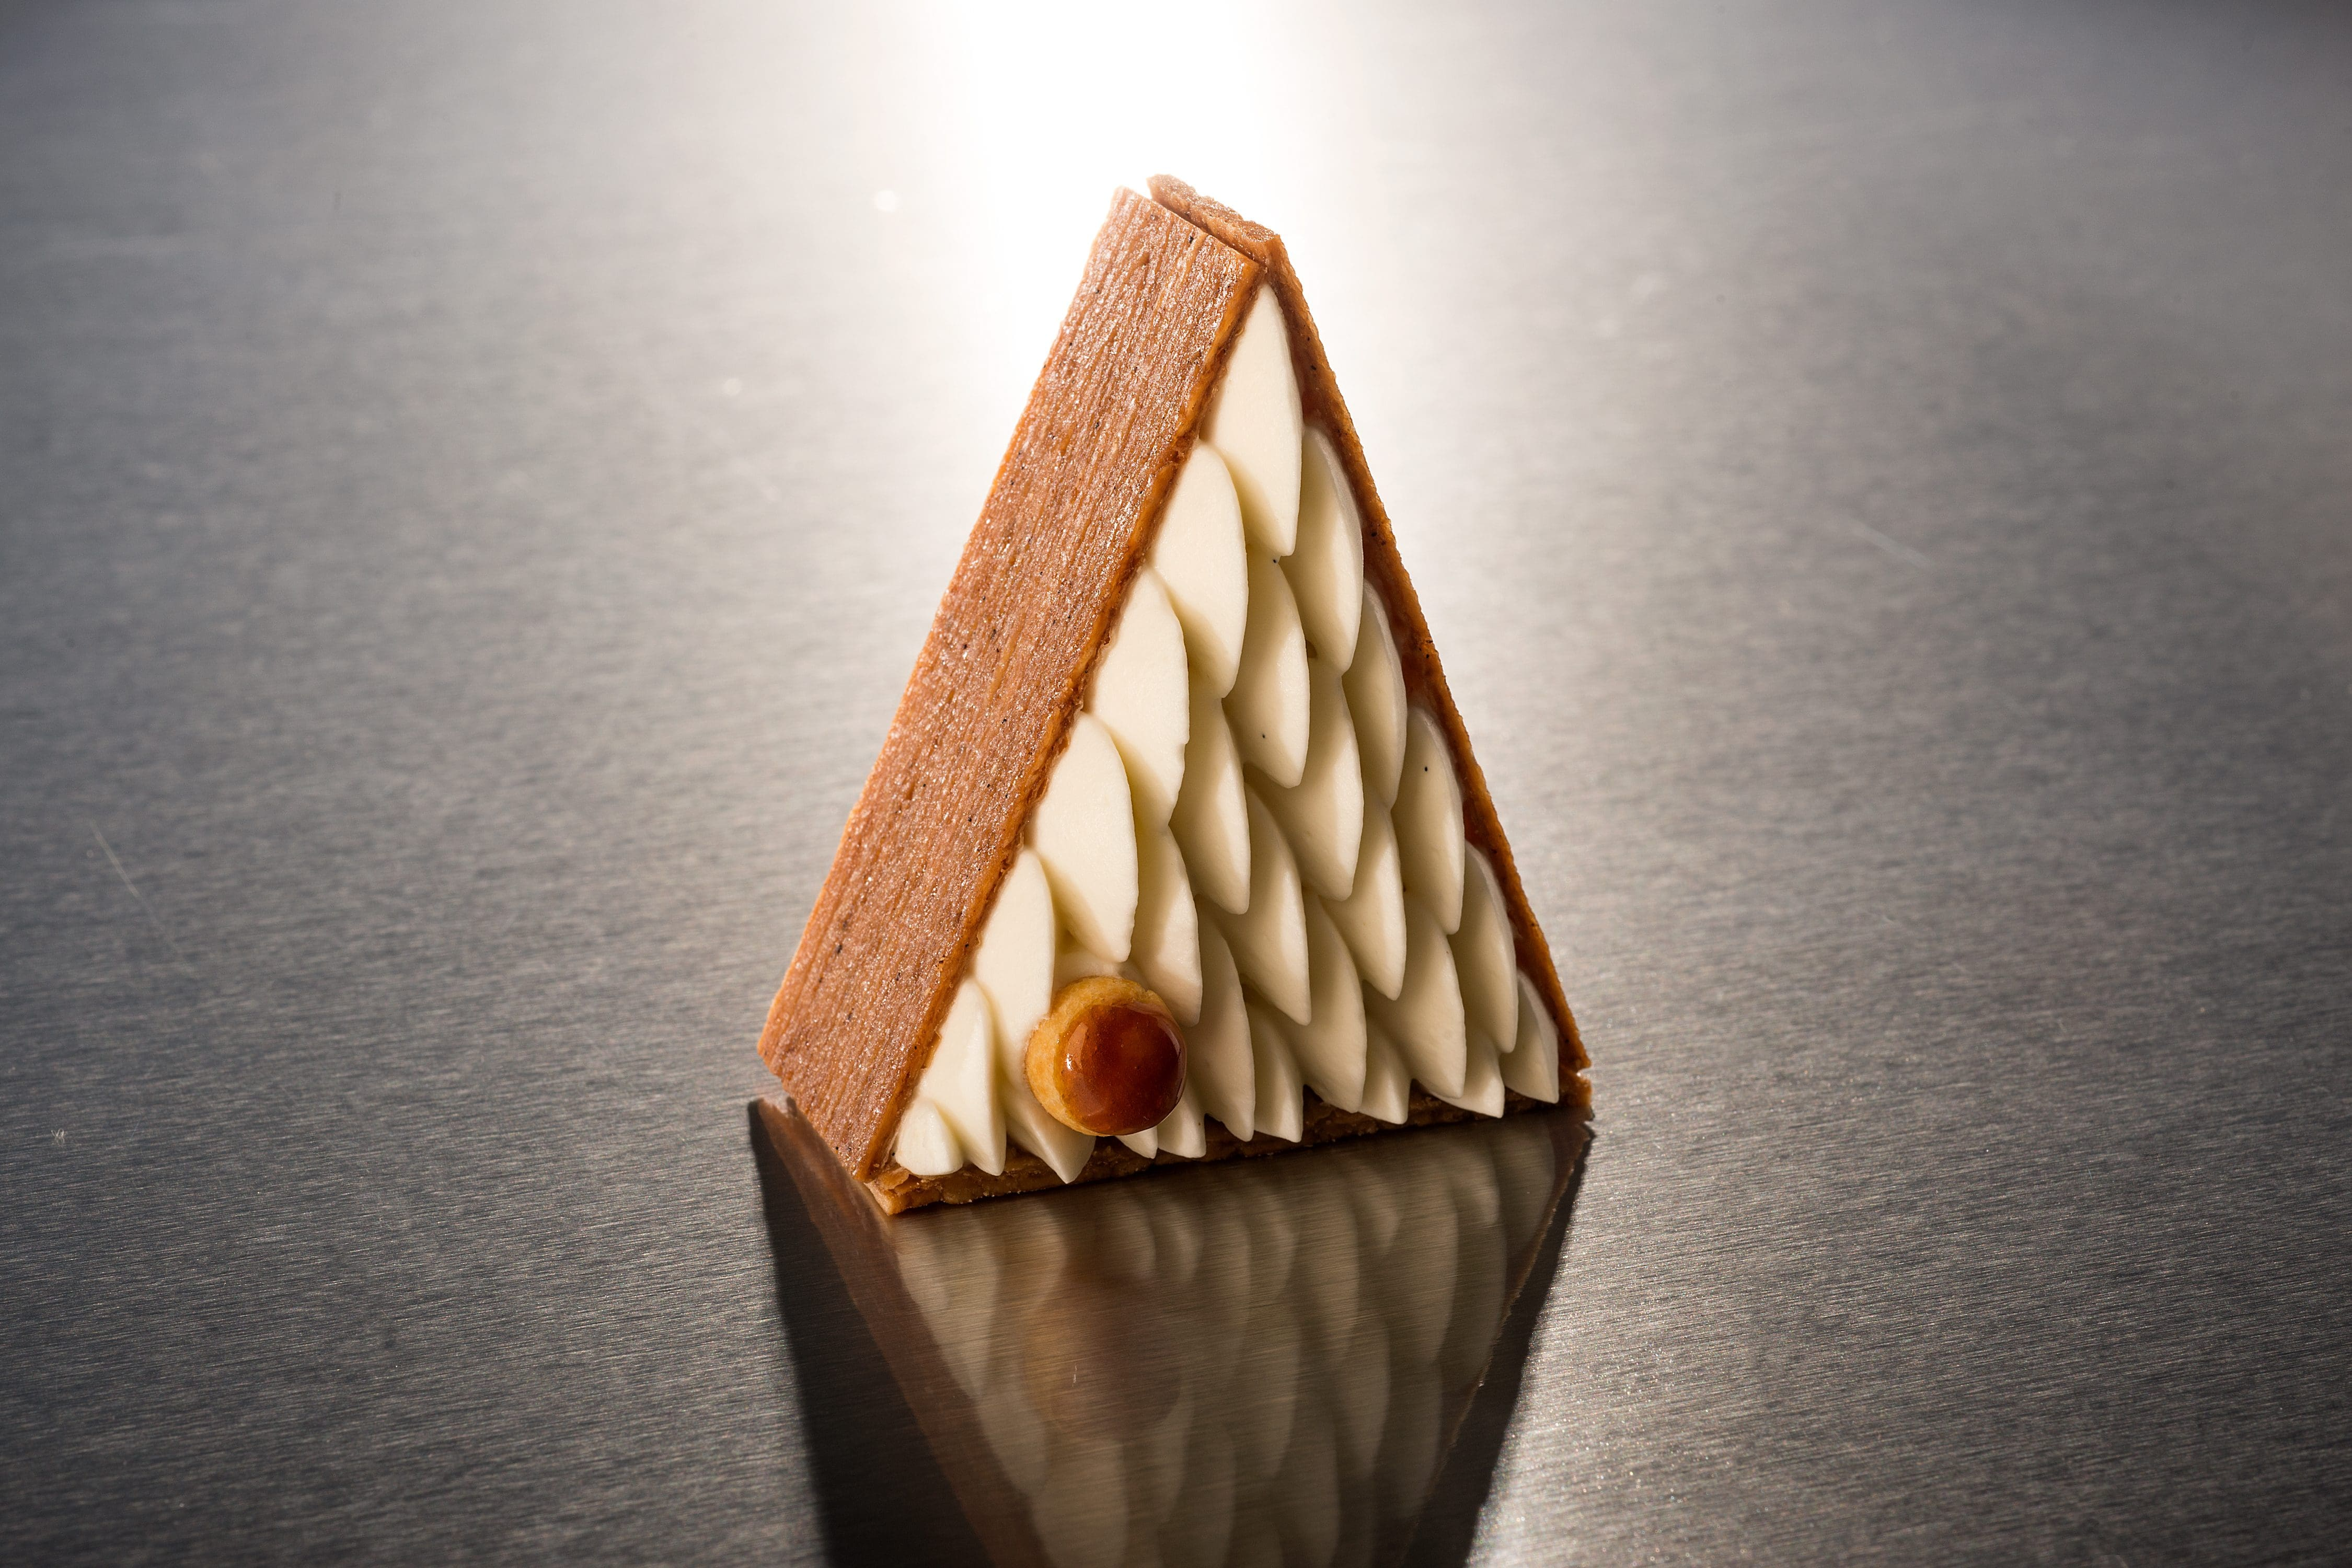 Triangular cake at the Mandarin Cake Shop at Mandarin Oriental, Paris